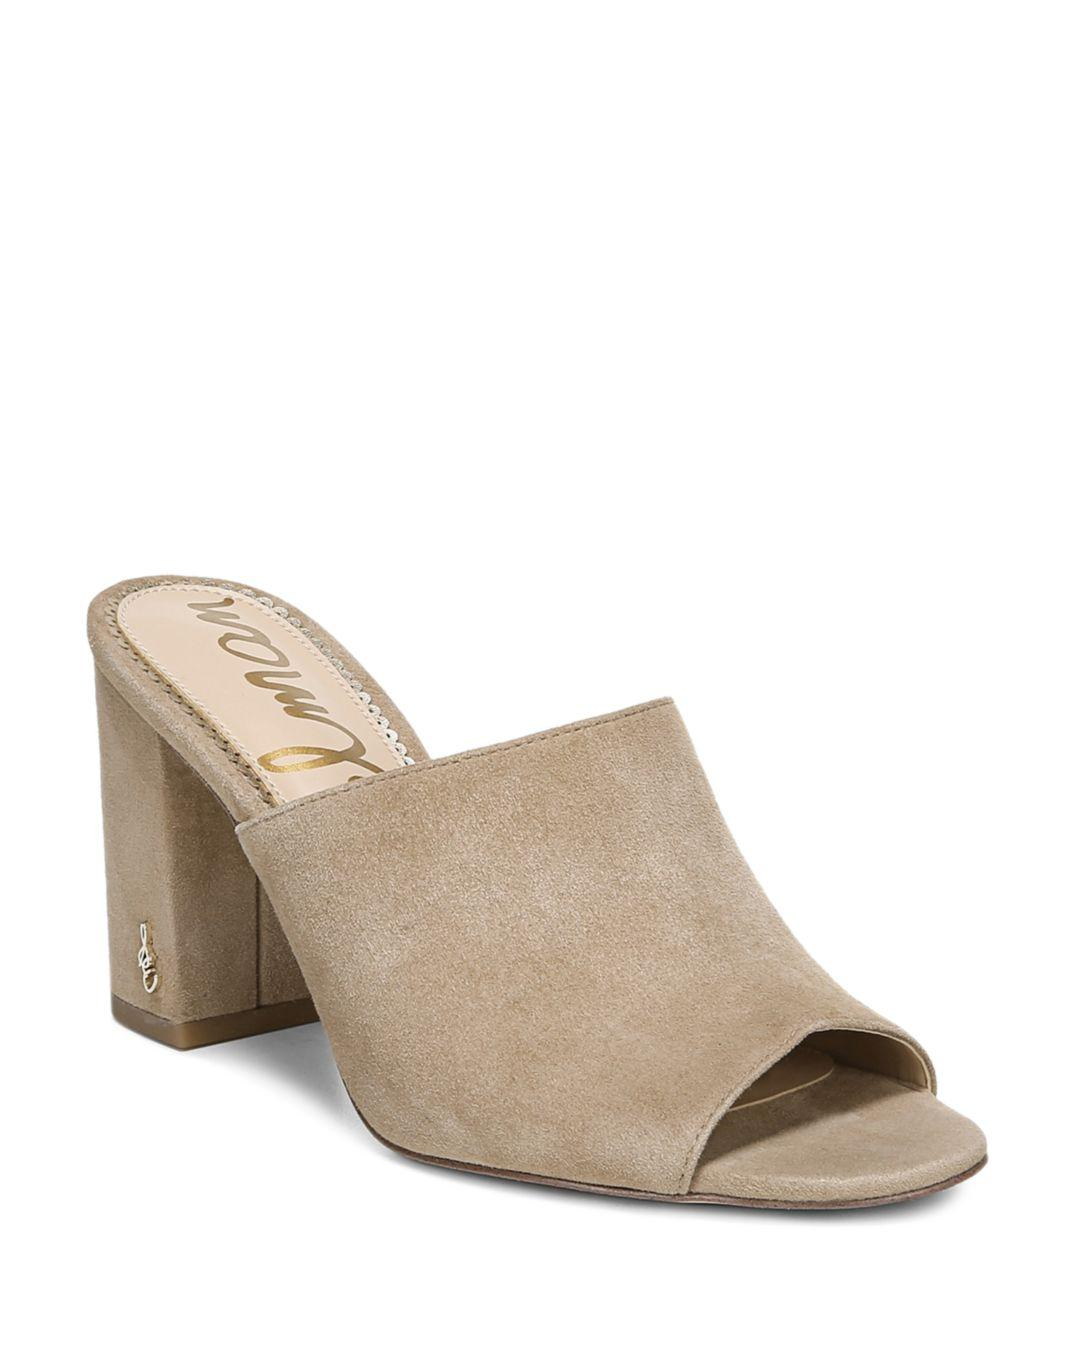 594a57629bd05 Lyst - Sam Edelman Women's Orlie Open-toe Block-heel Mules in Natural